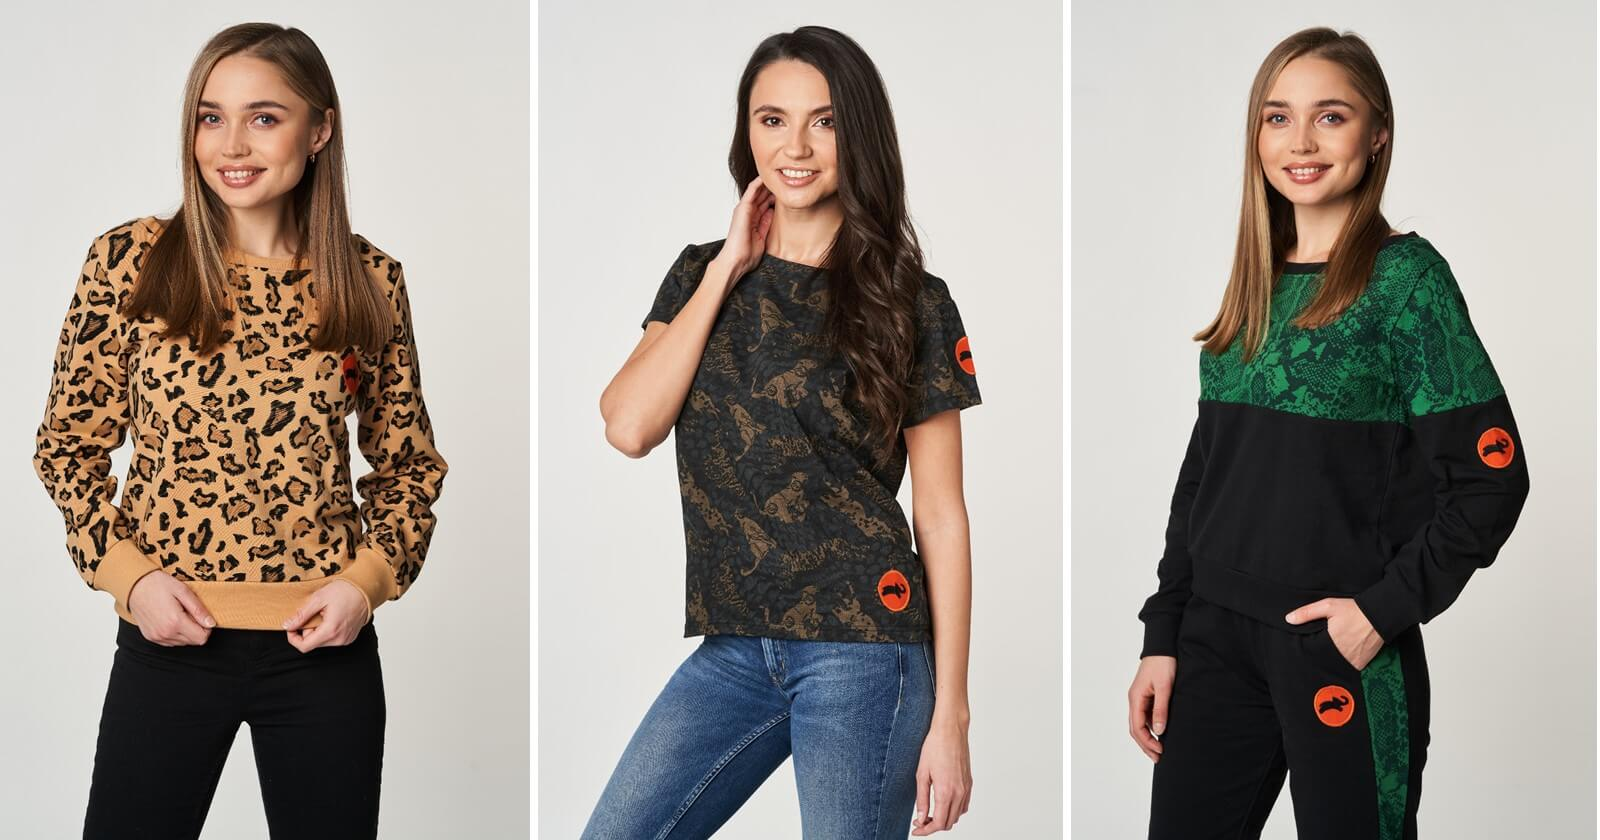 Biedronka Launches Animal Planet Fashion Collection with E plus M and Planeta Junior image